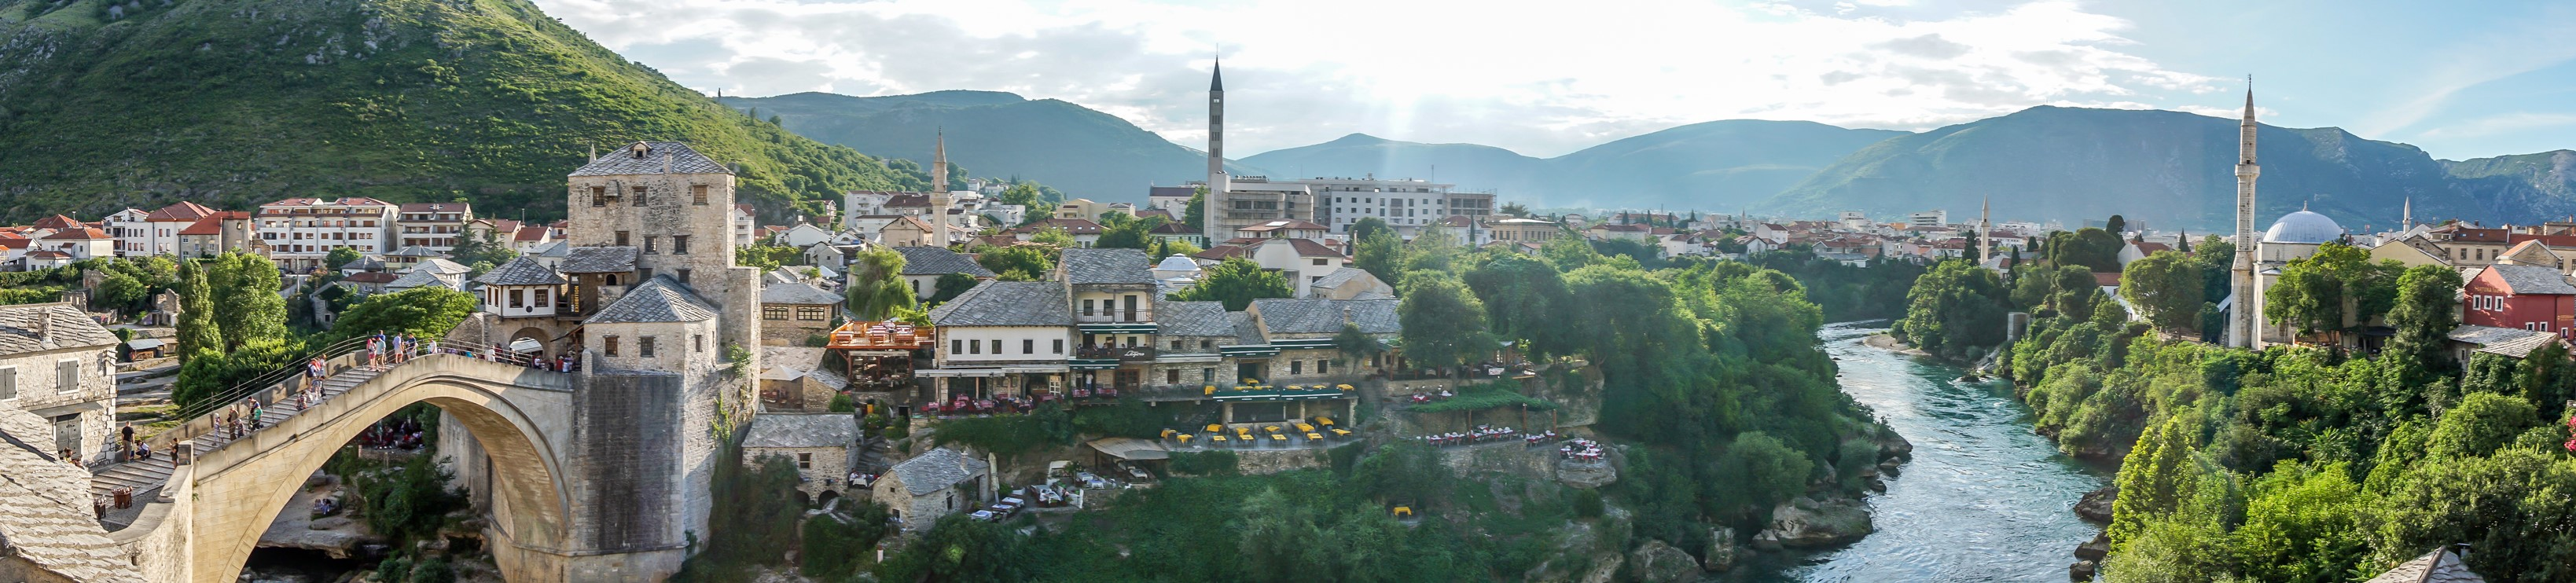 Panorama of old city Mostar